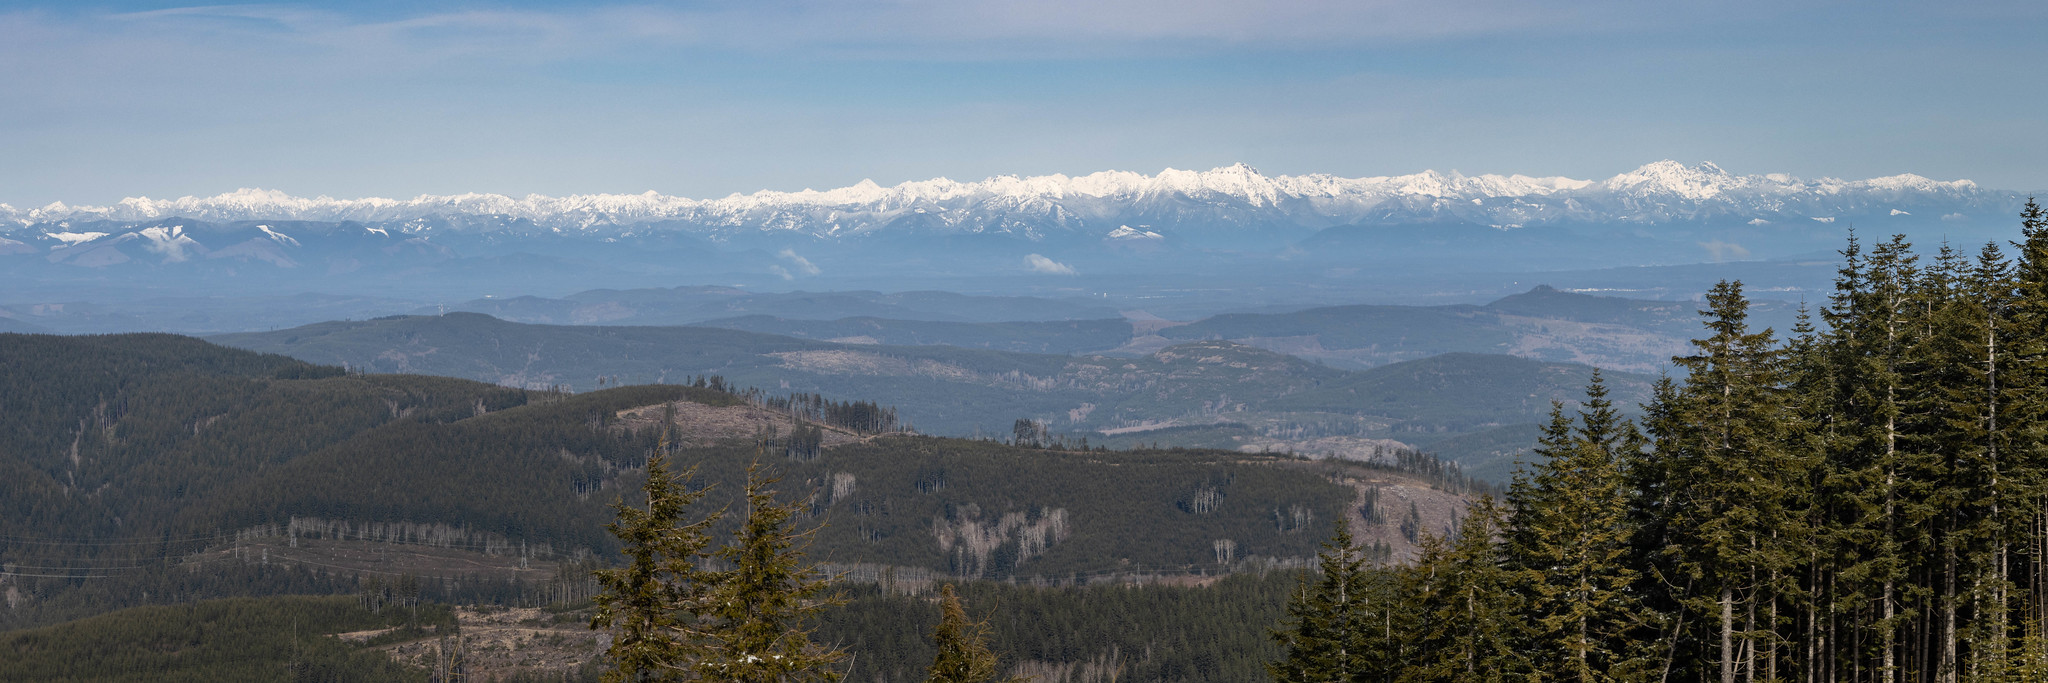 Northern panoramic view of the Olympic Mountains